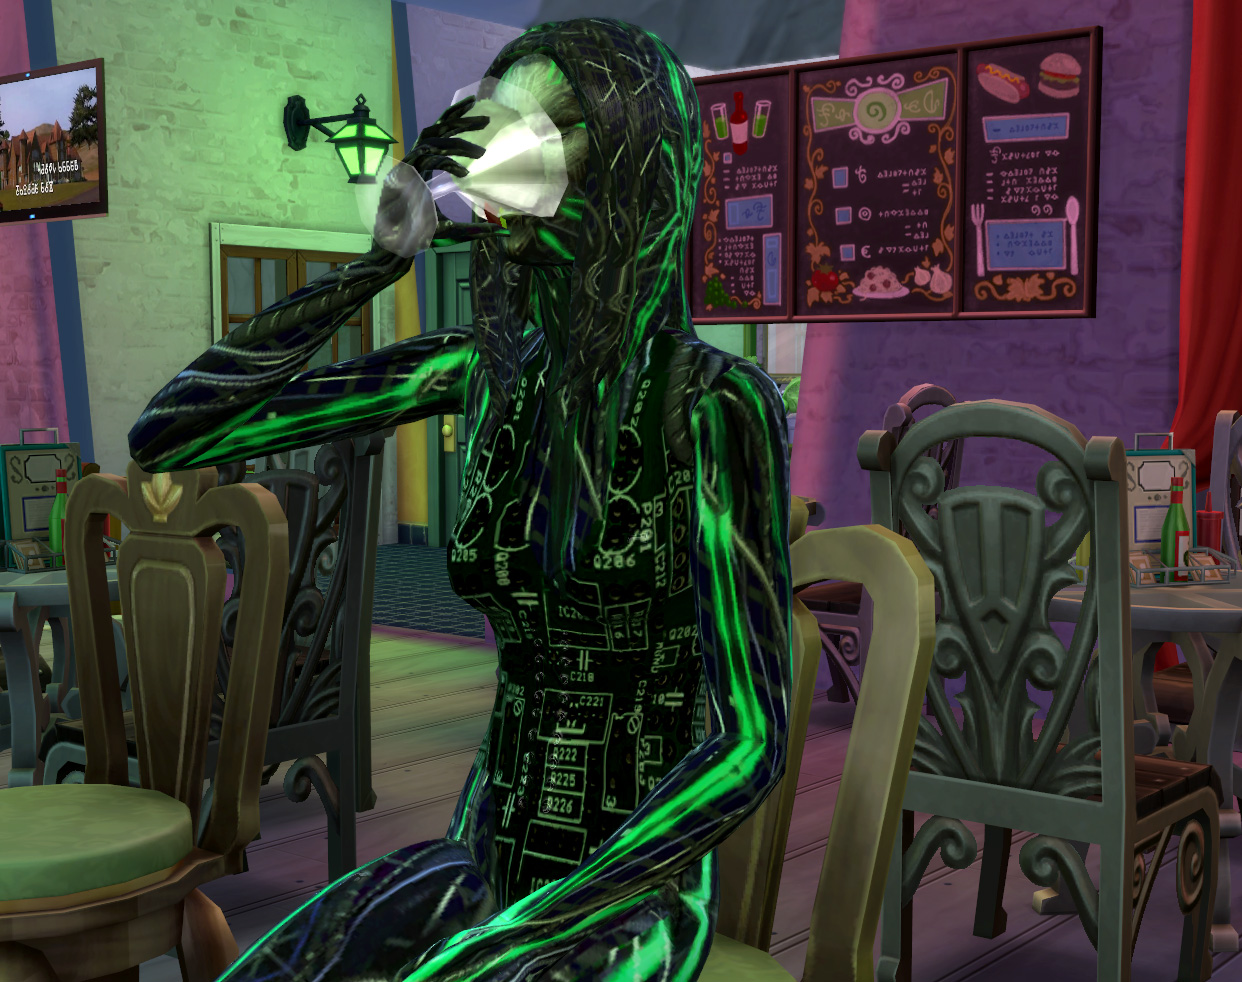 Mod The Sims - SHODAN from System Shock